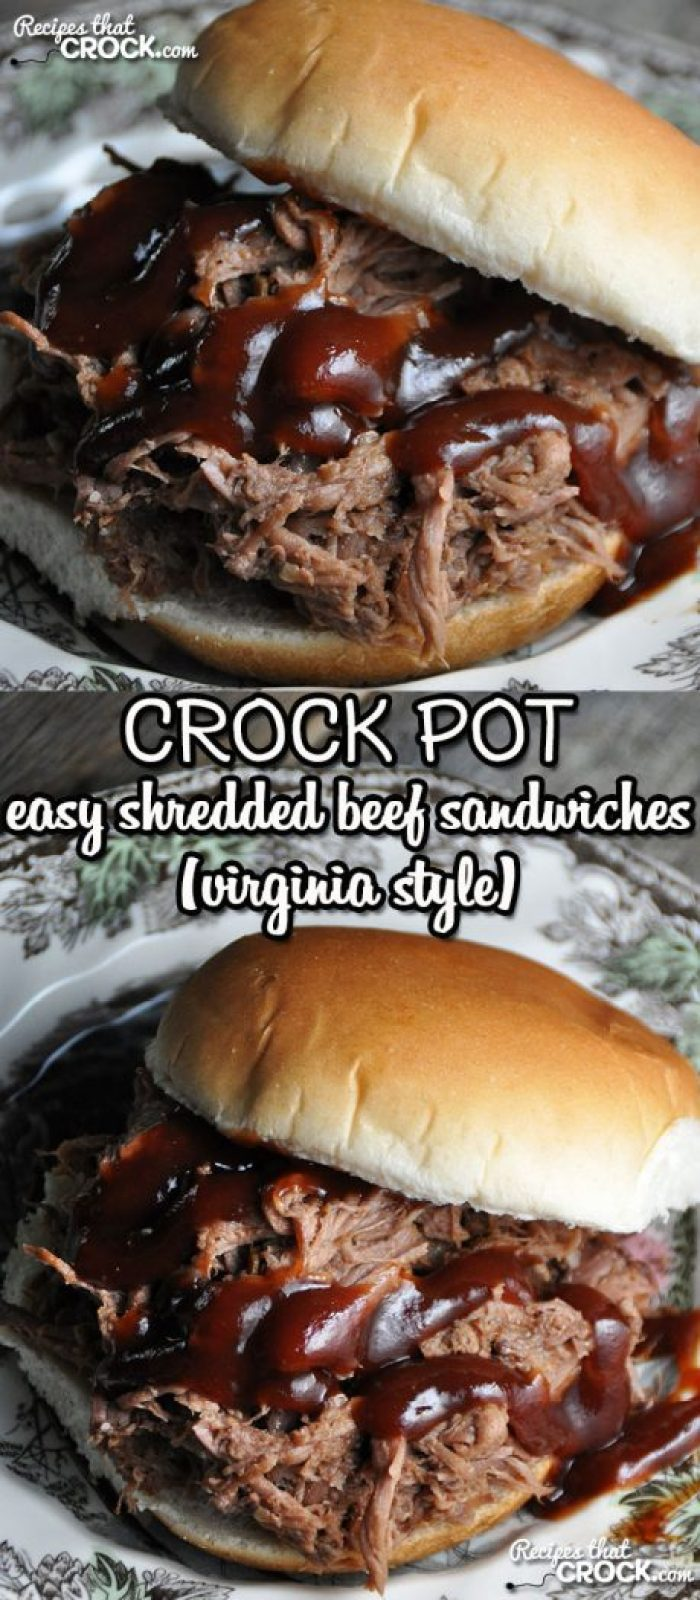 In the mood for a savory beef sandwich that is a snap to make and incredibly flavorful and tender? Check out these Crock Pot Shredded Beef Sandwiches (Virginia Style)!